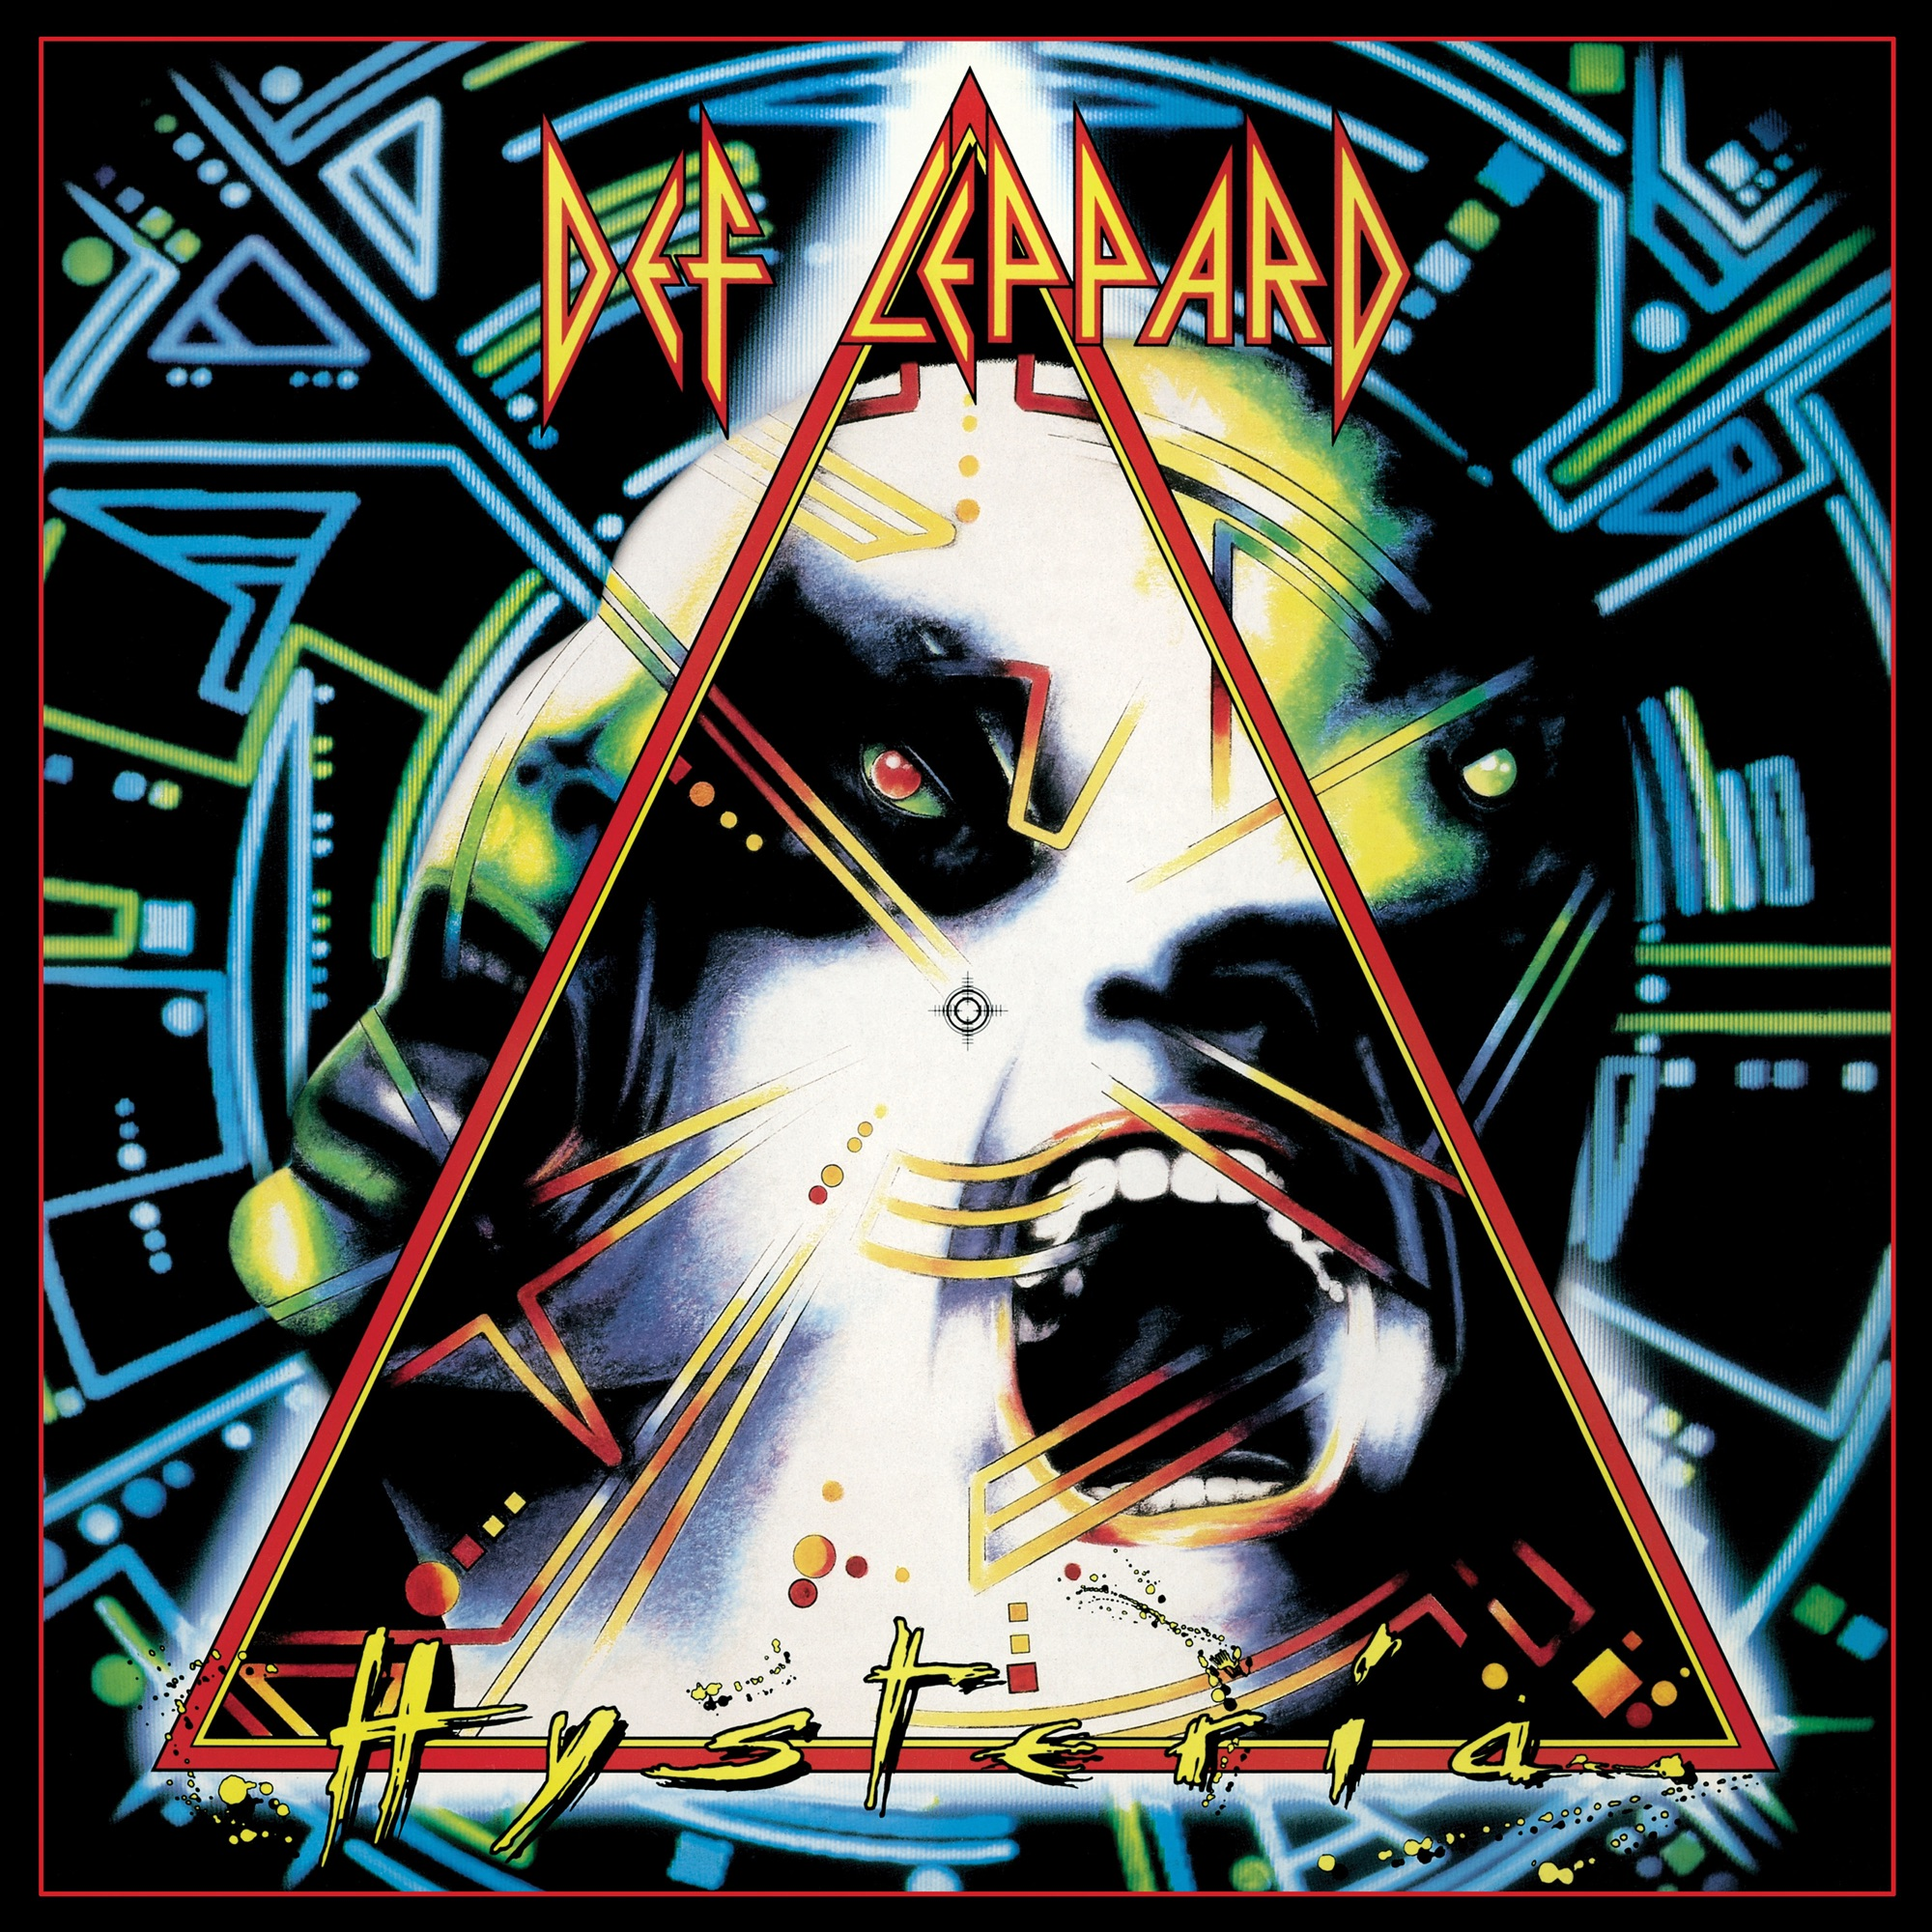 Art for Hysteria by Def Leppard